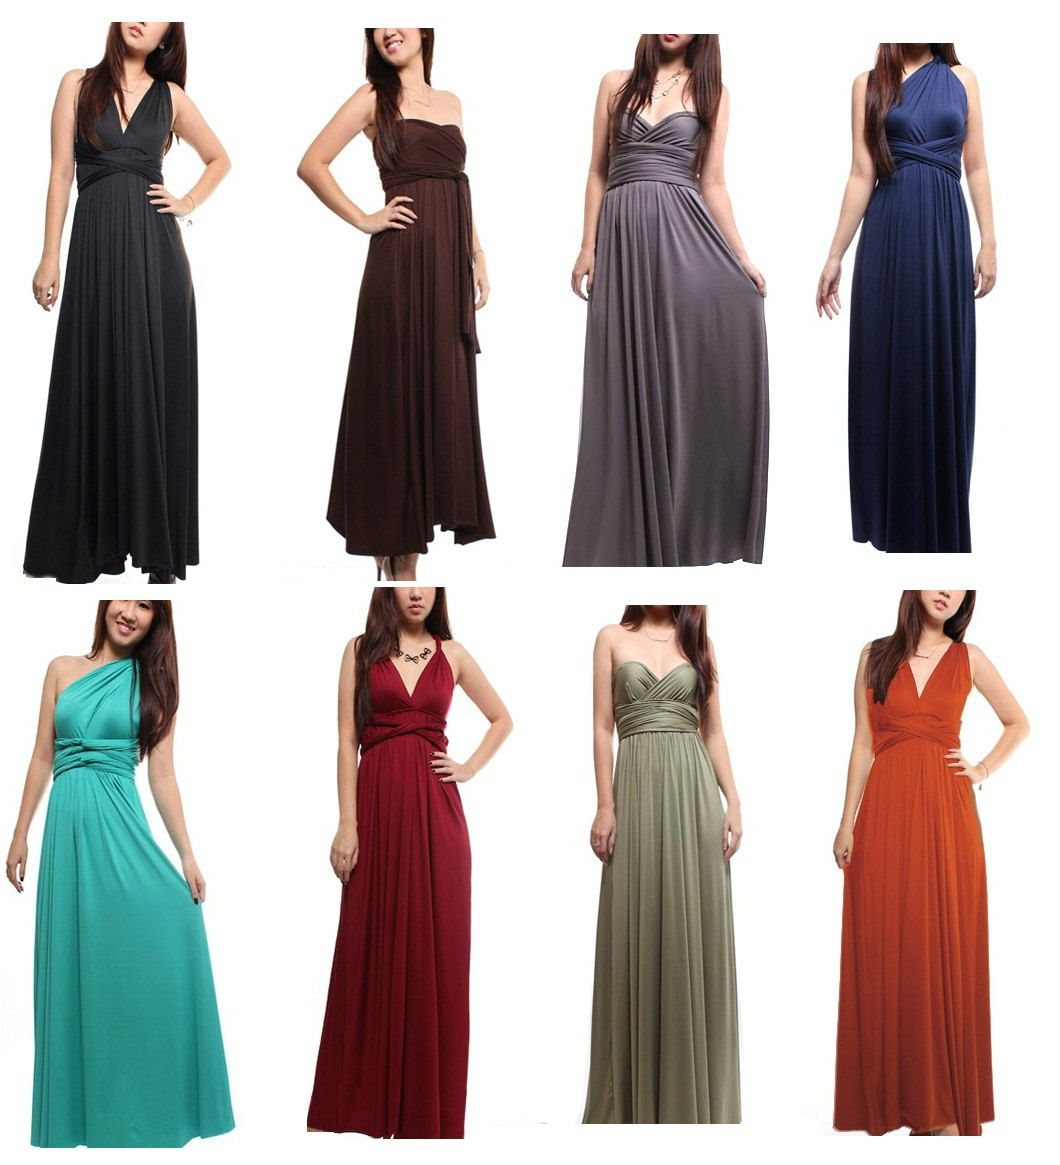 The One and Only CONVERTIBLE Infinite Infinity Dress for all ...